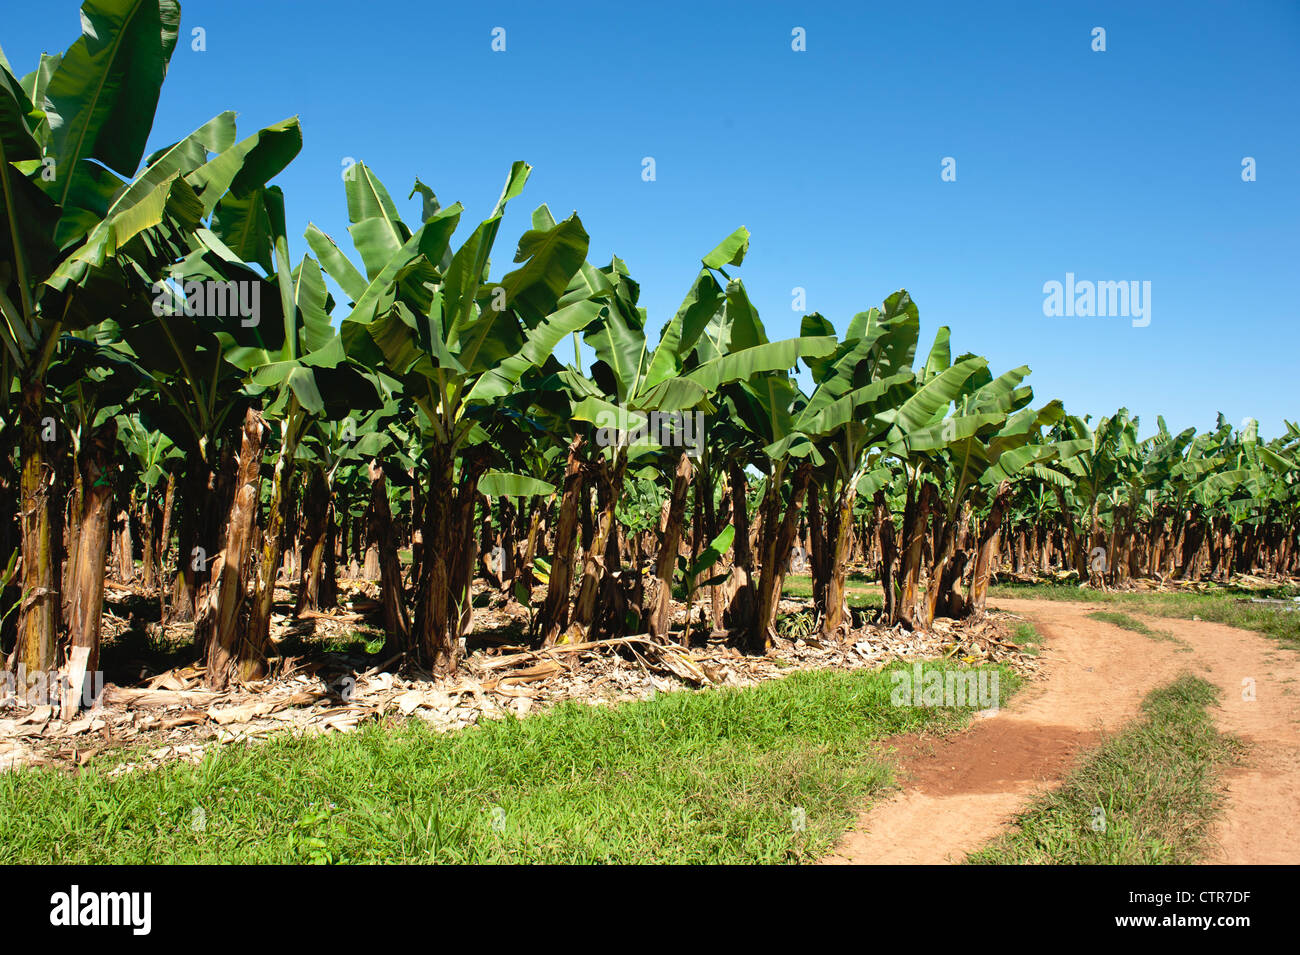 Banana plantation in the wet tropics of Queensland near Mission Beach on the Cassowary Coast - Stock Image